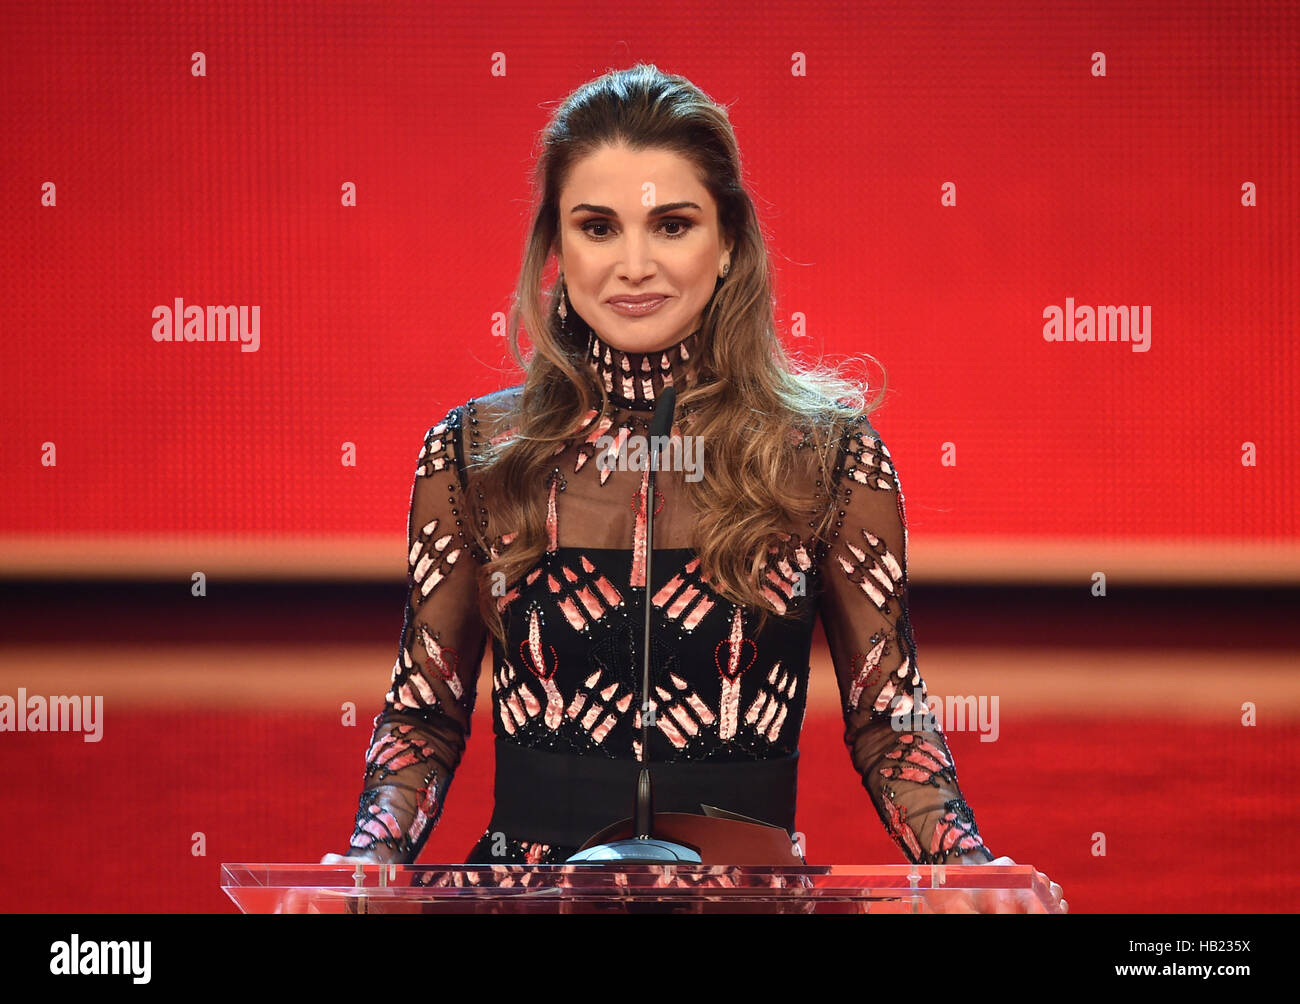 Berlin Germany 3rd Dec 2016 Queen Rania Al Abdullaha Of Jordan Stock Photo Alamy